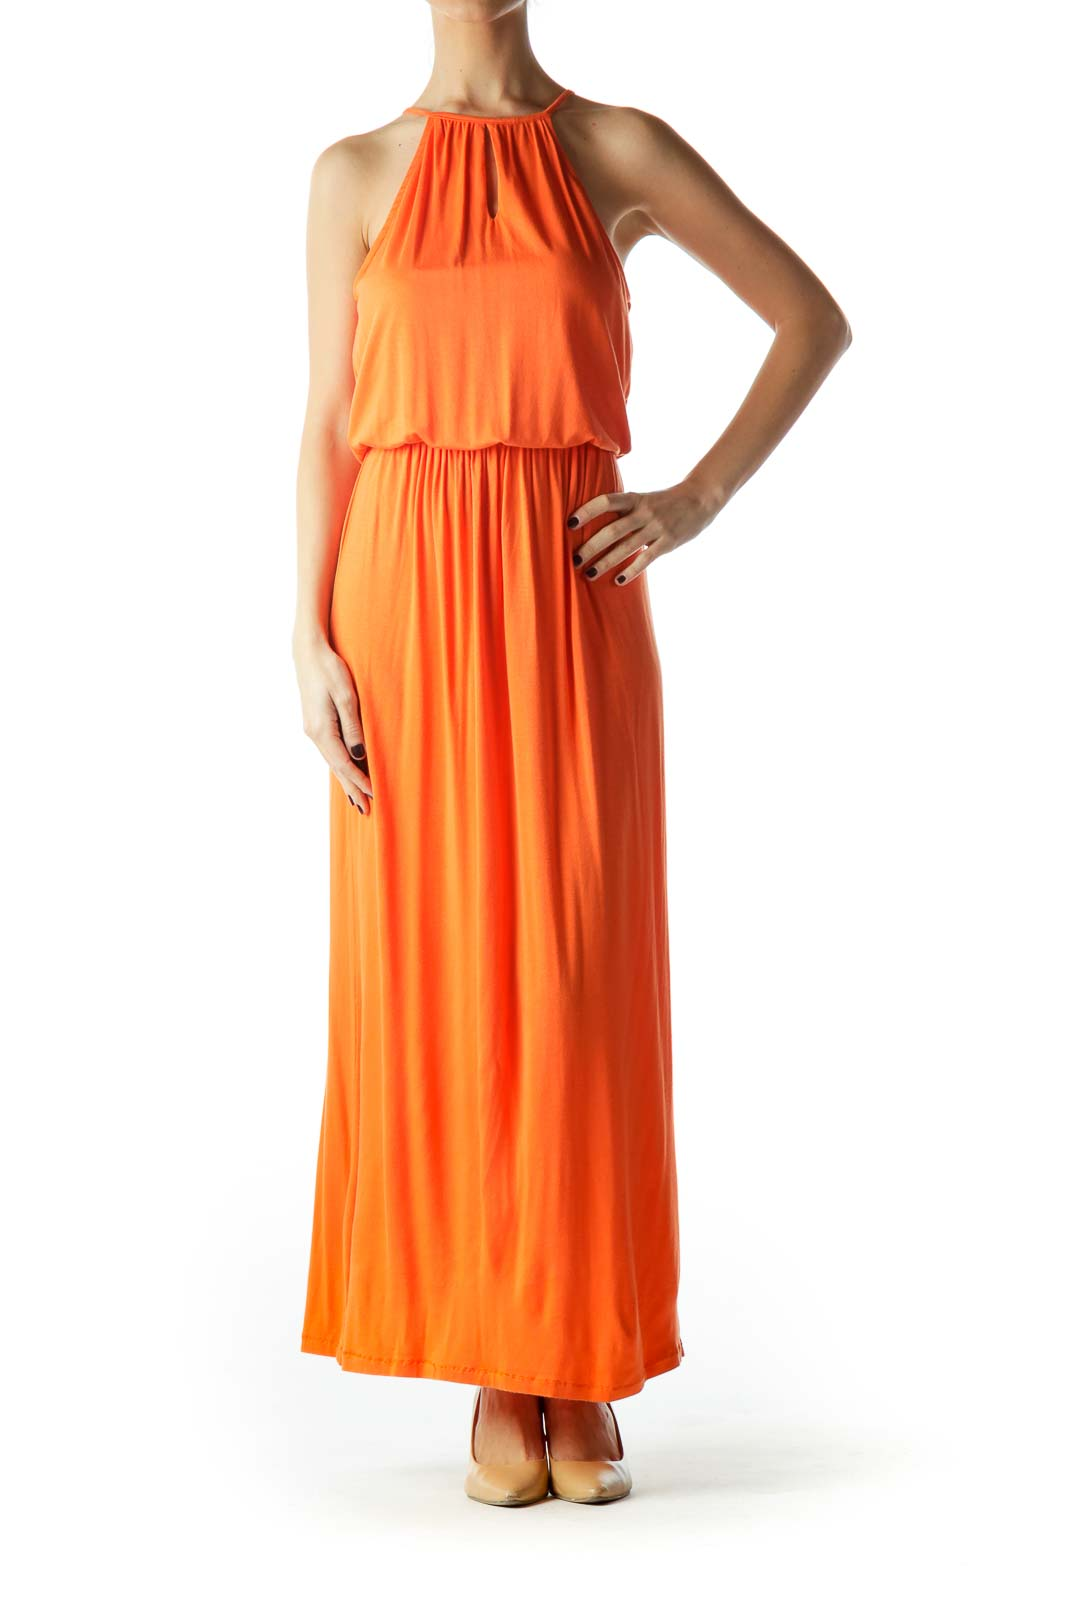 Orange Halter Neck Empire Waist Maxi Dress